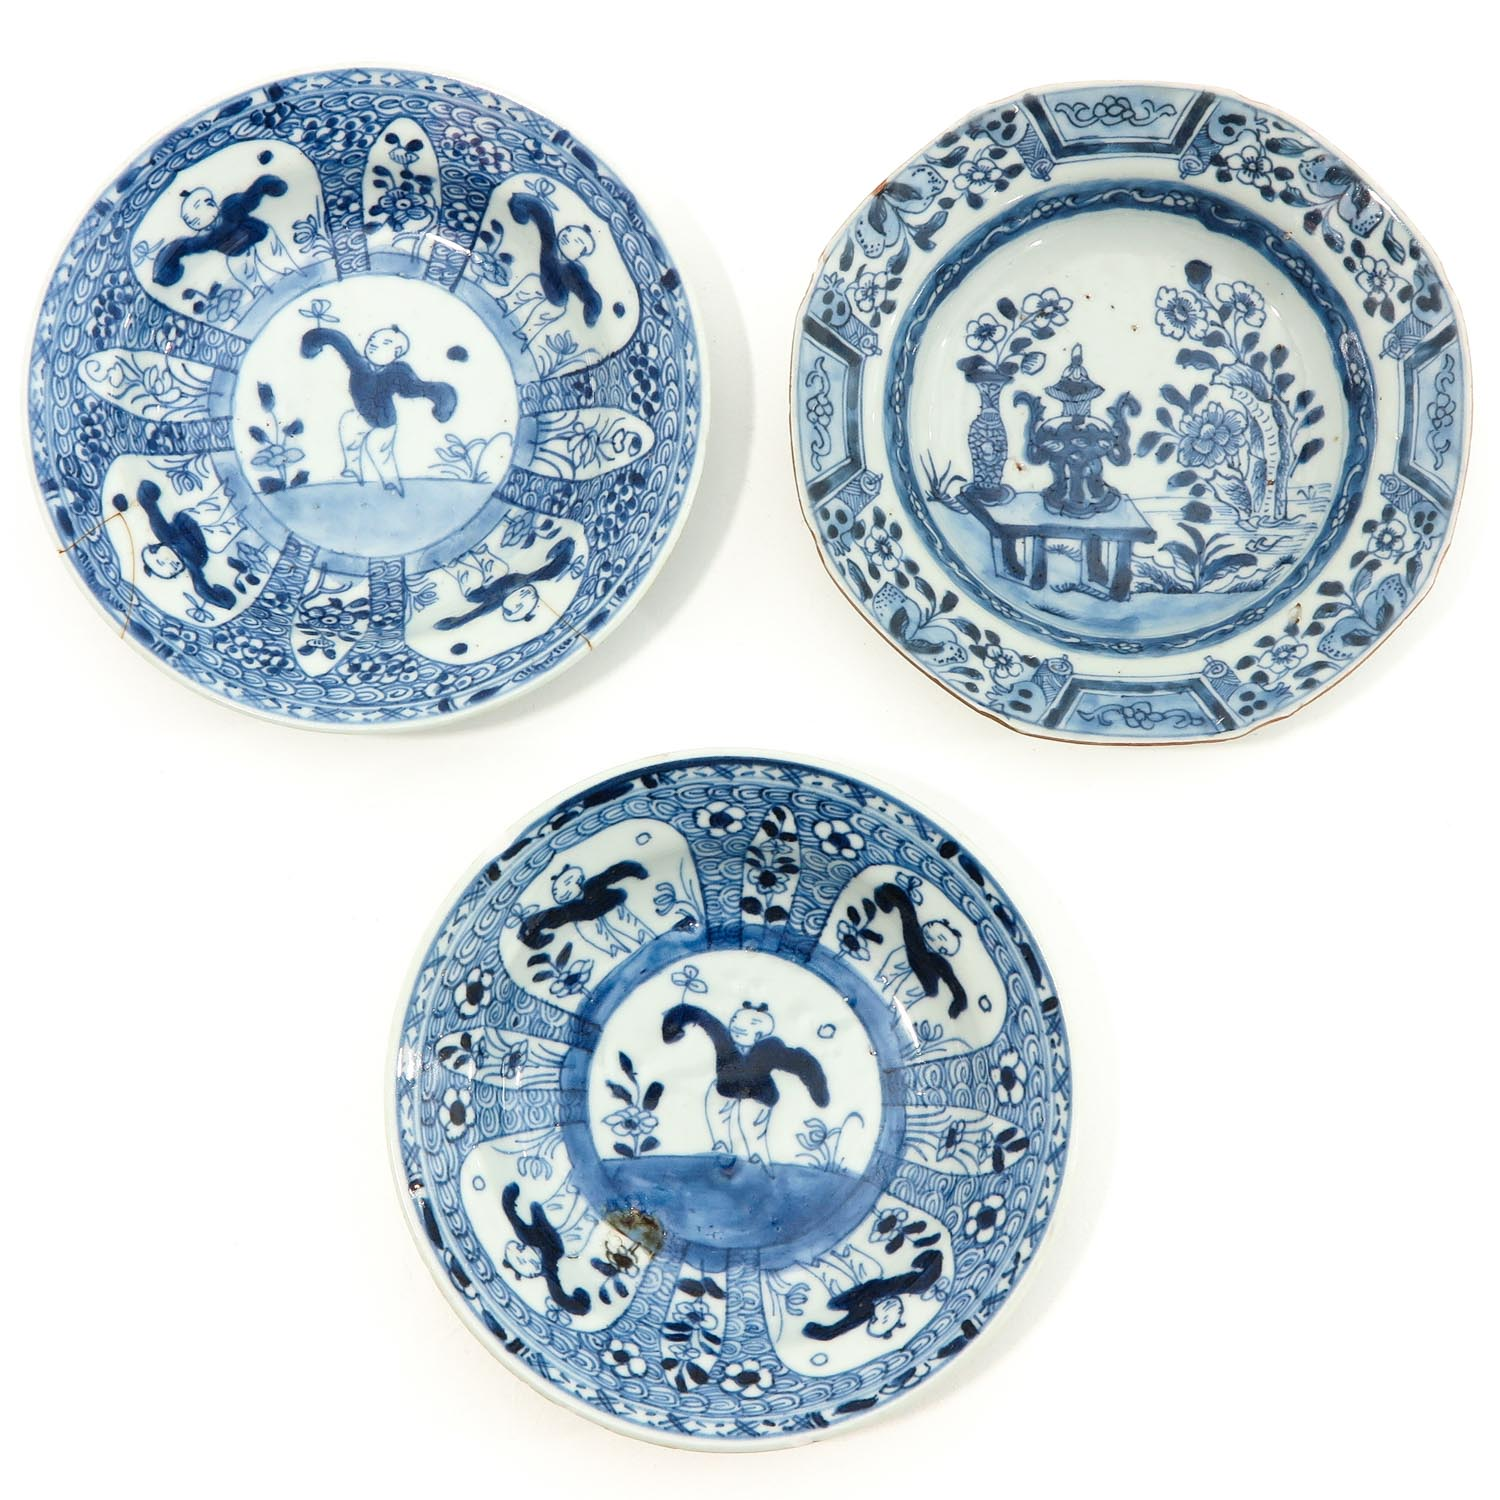 A Collection of 9 Blue and White Plates - Image 3 of 10